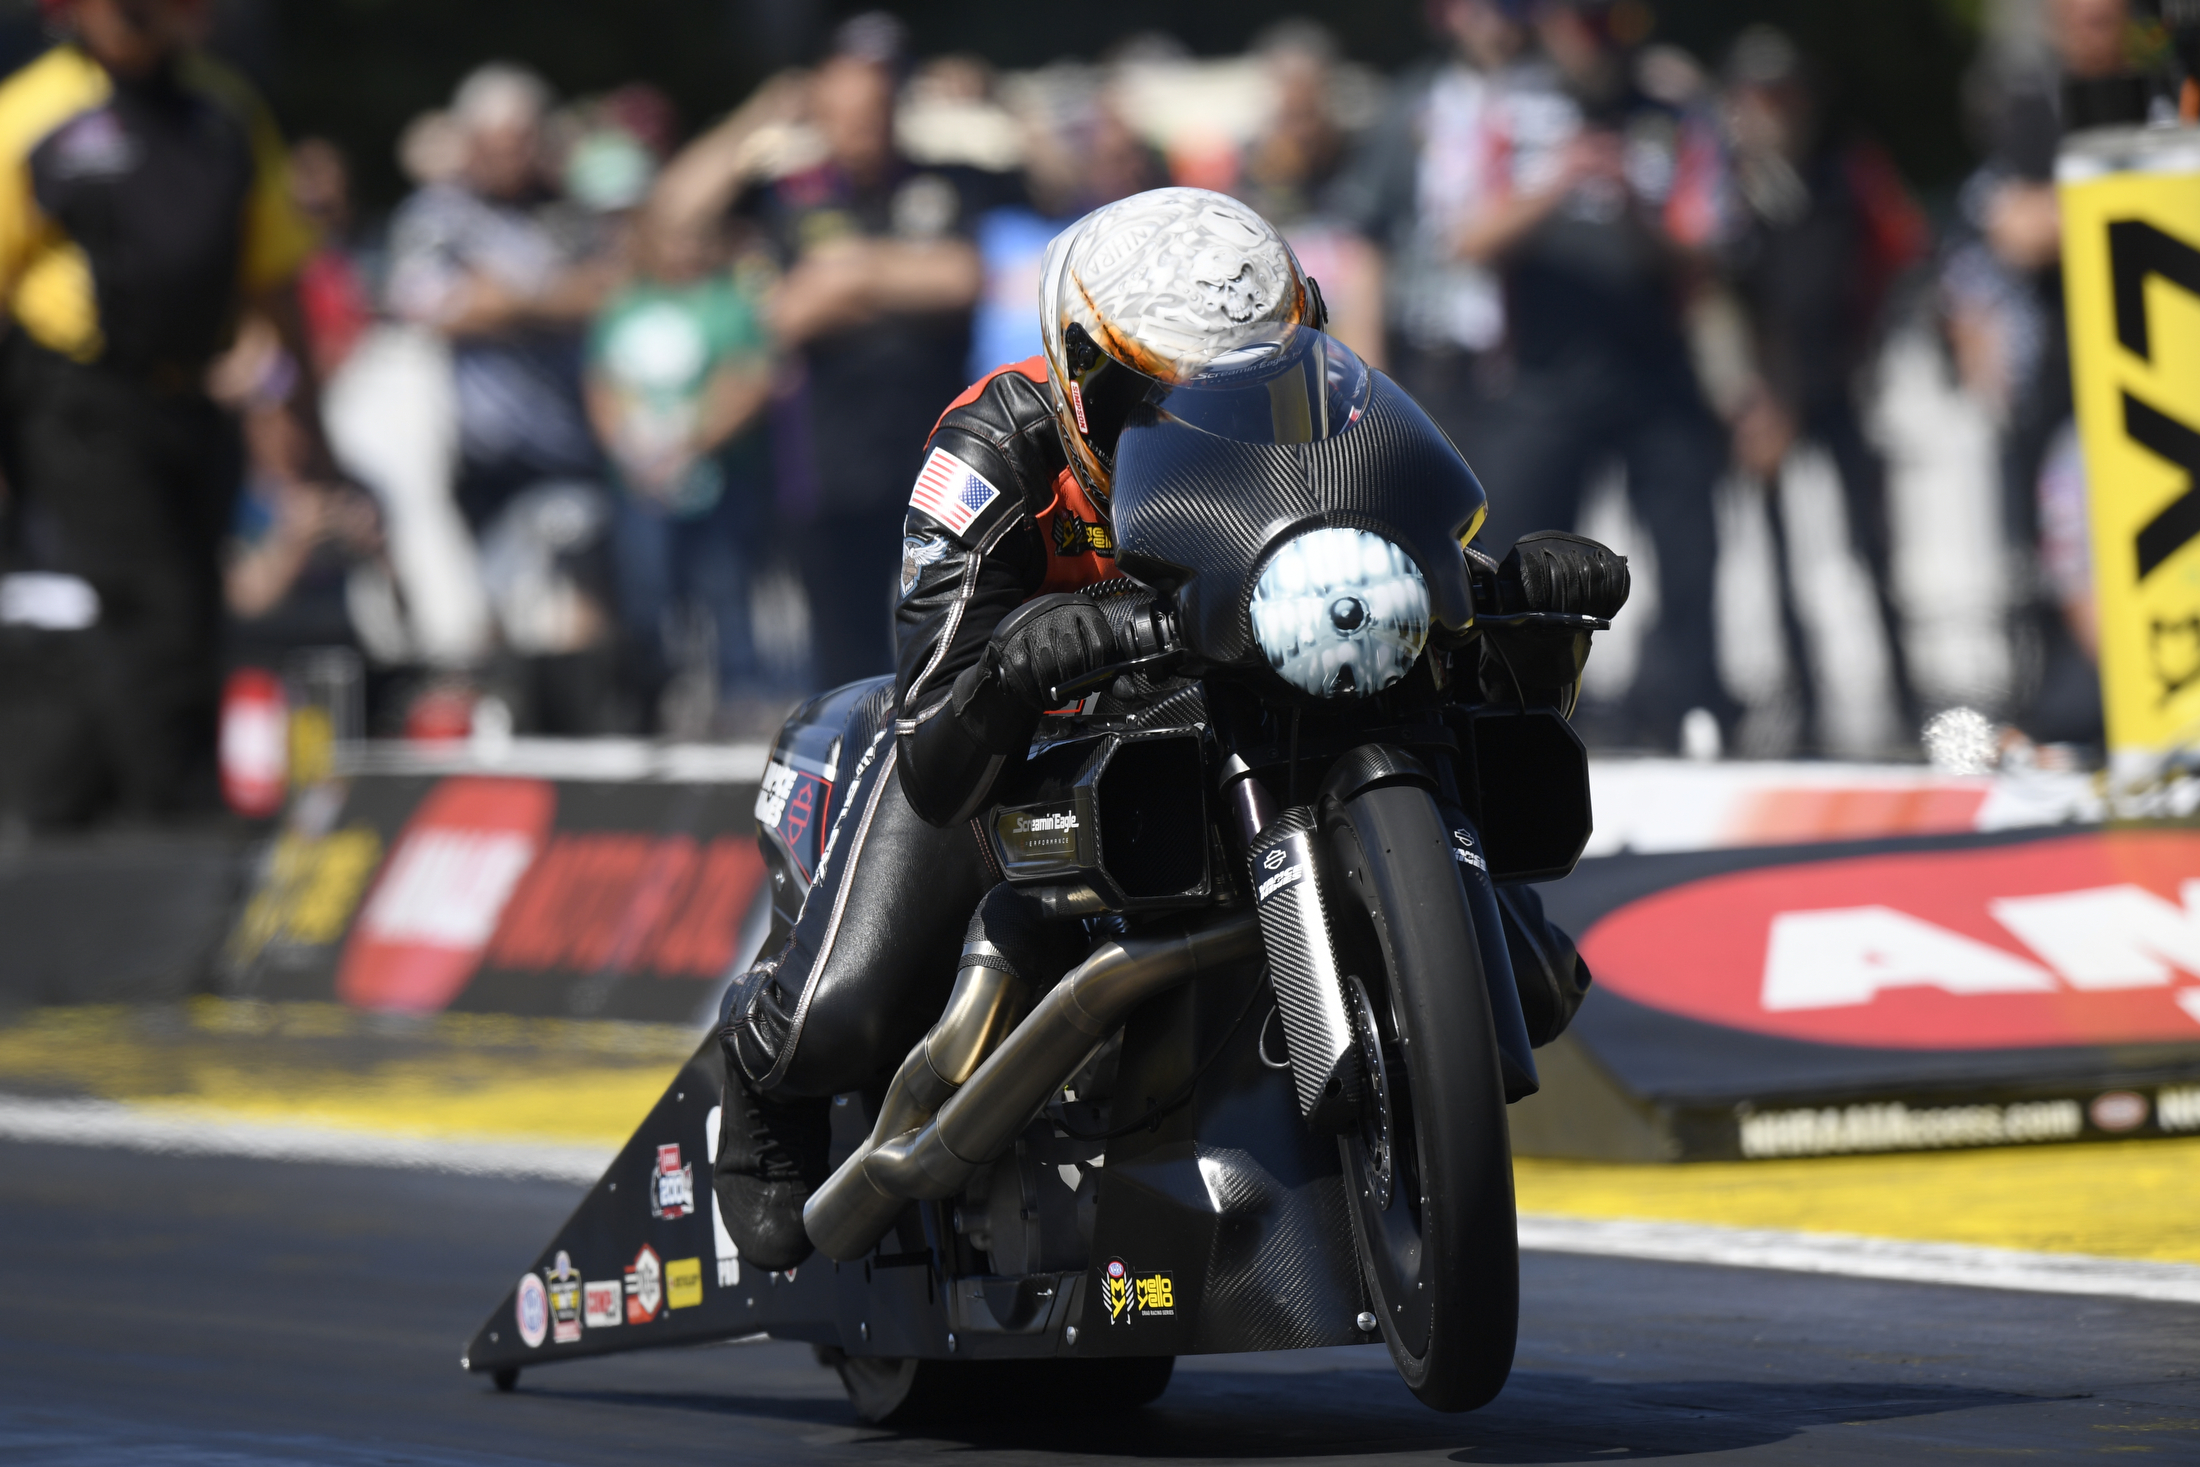 NHRA Pro Stock Motorcycle - Andrew Hines - Saturday - Gainesville - gatornationals